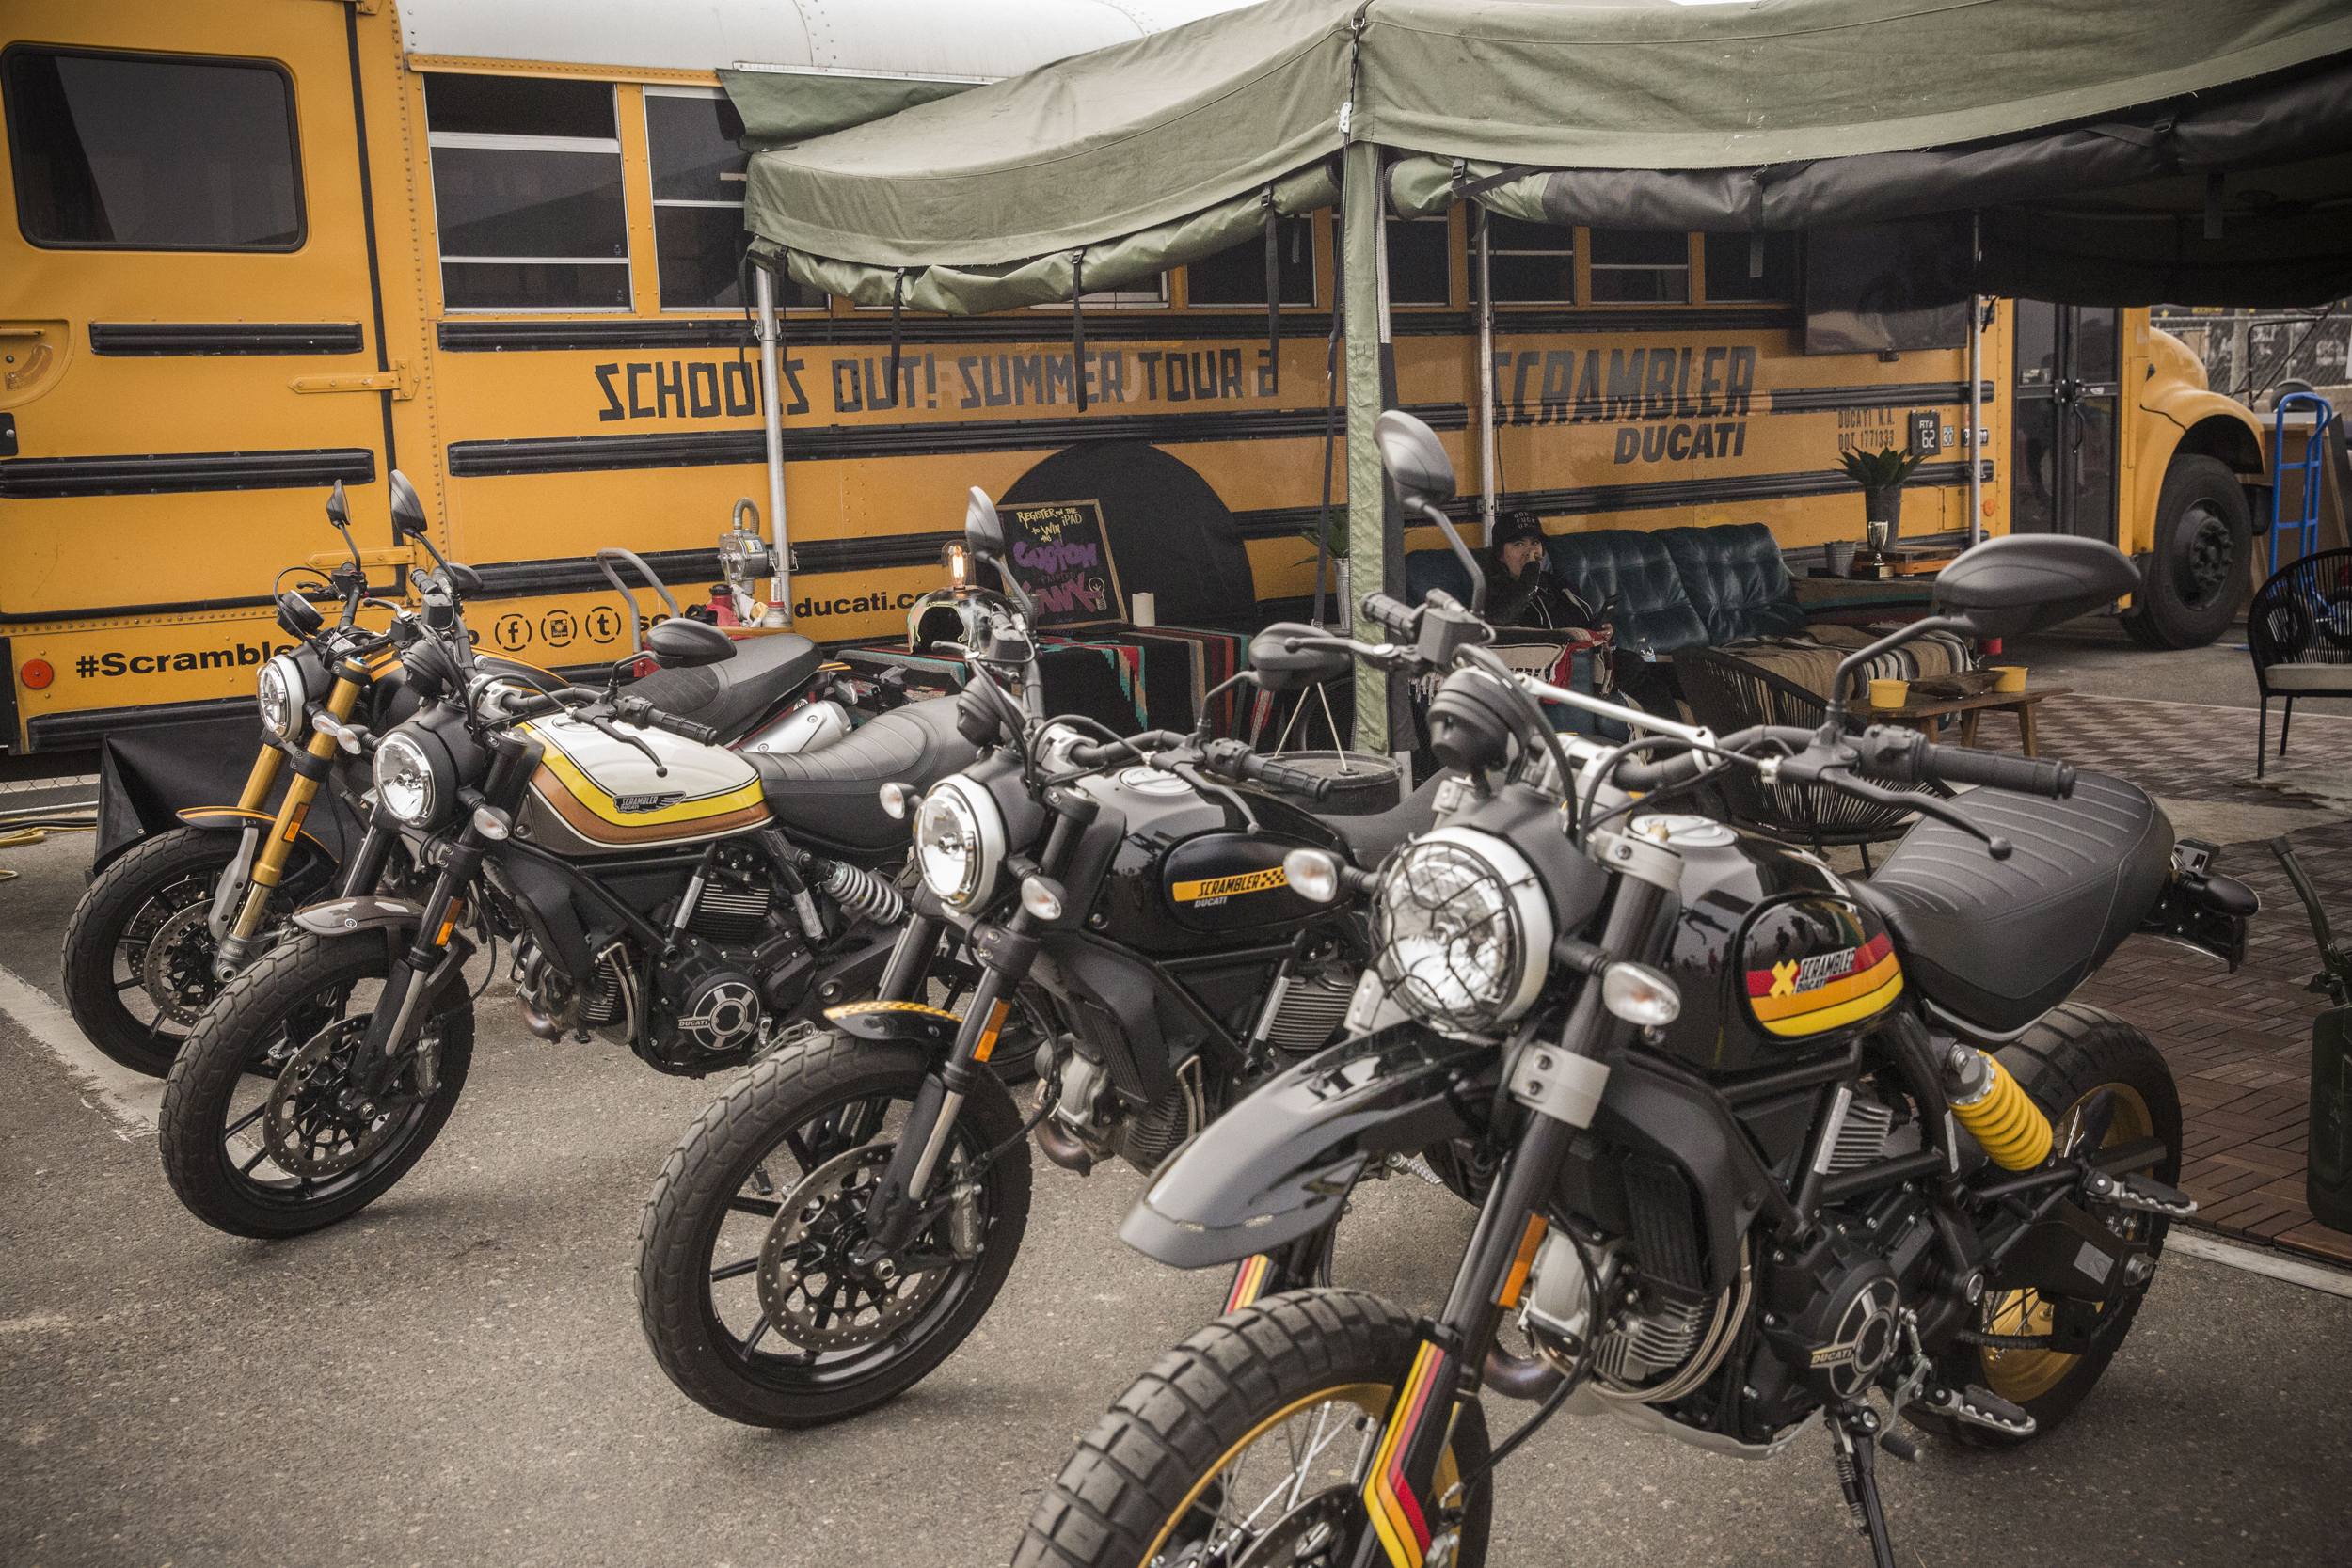 Scrambler Summer Road Trip